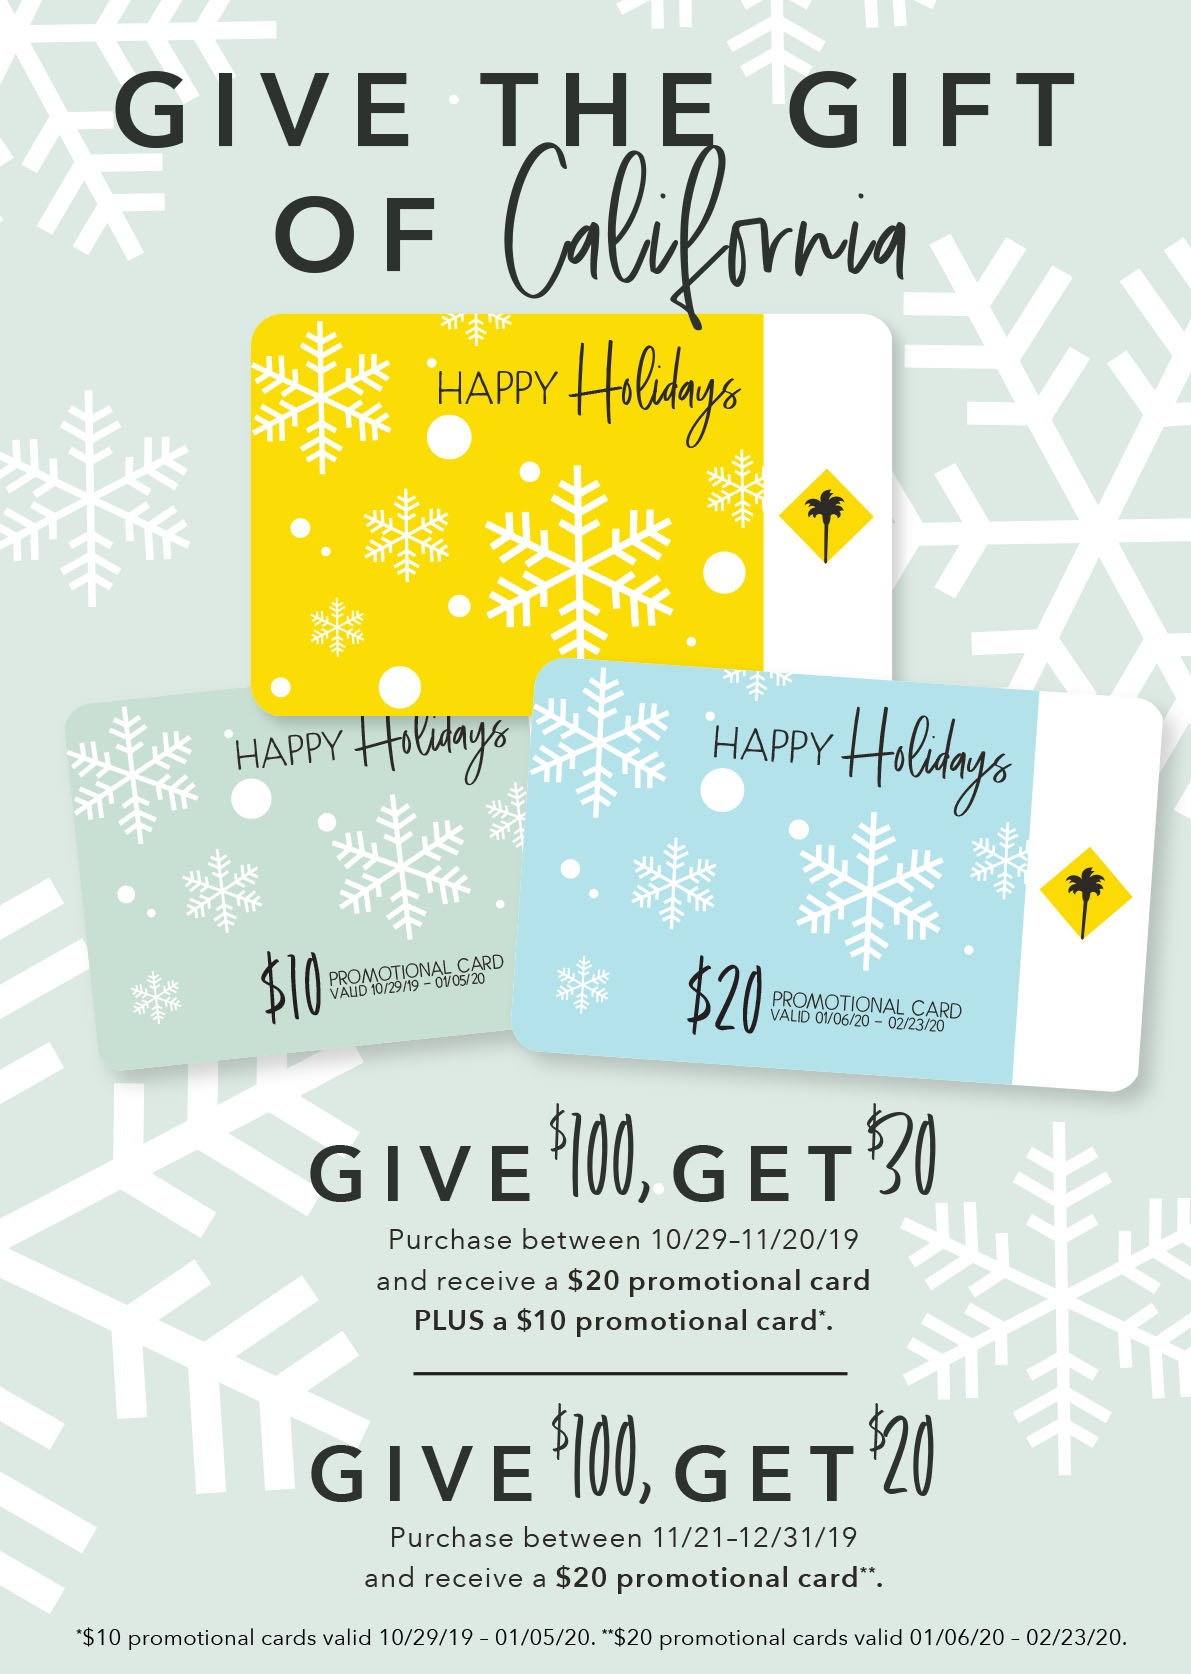 Give the Gift of California! from California Pizza Kitchen